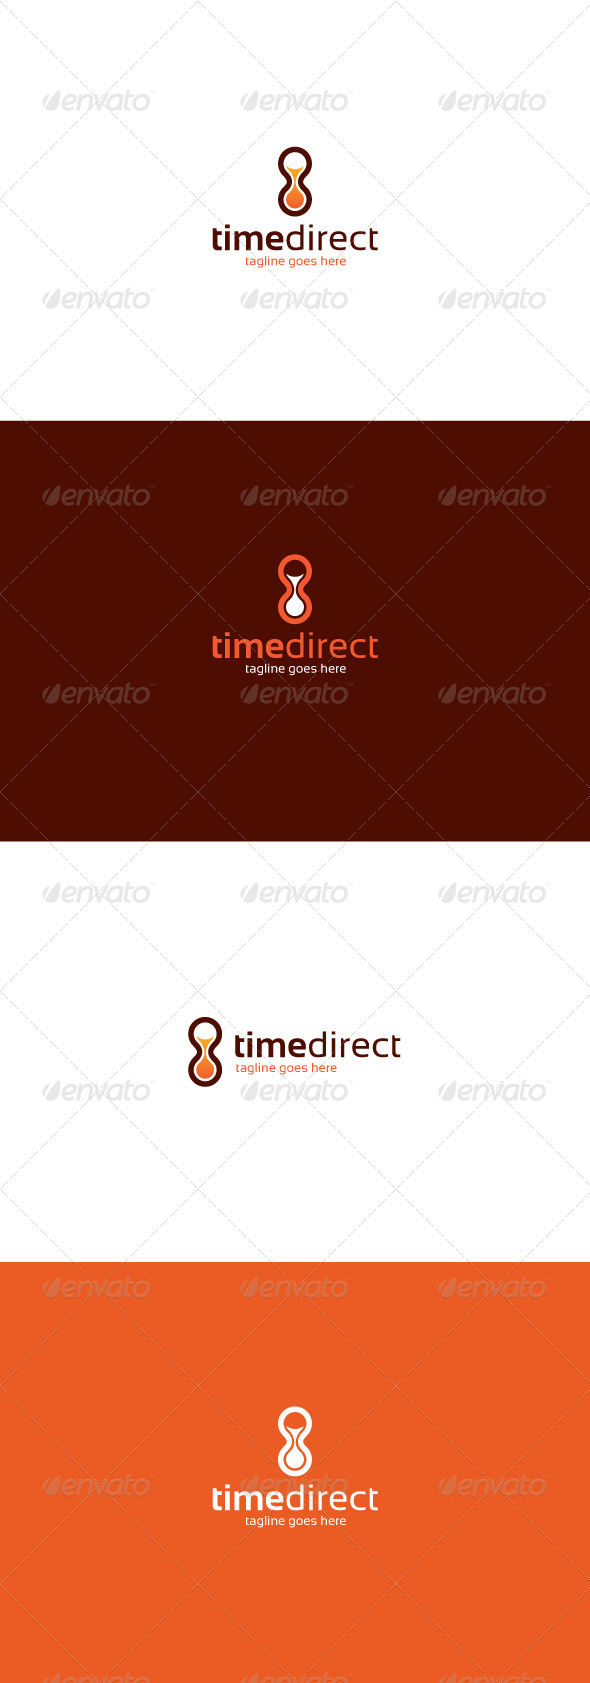 GraphicRiver Time Direct Logo 7721289